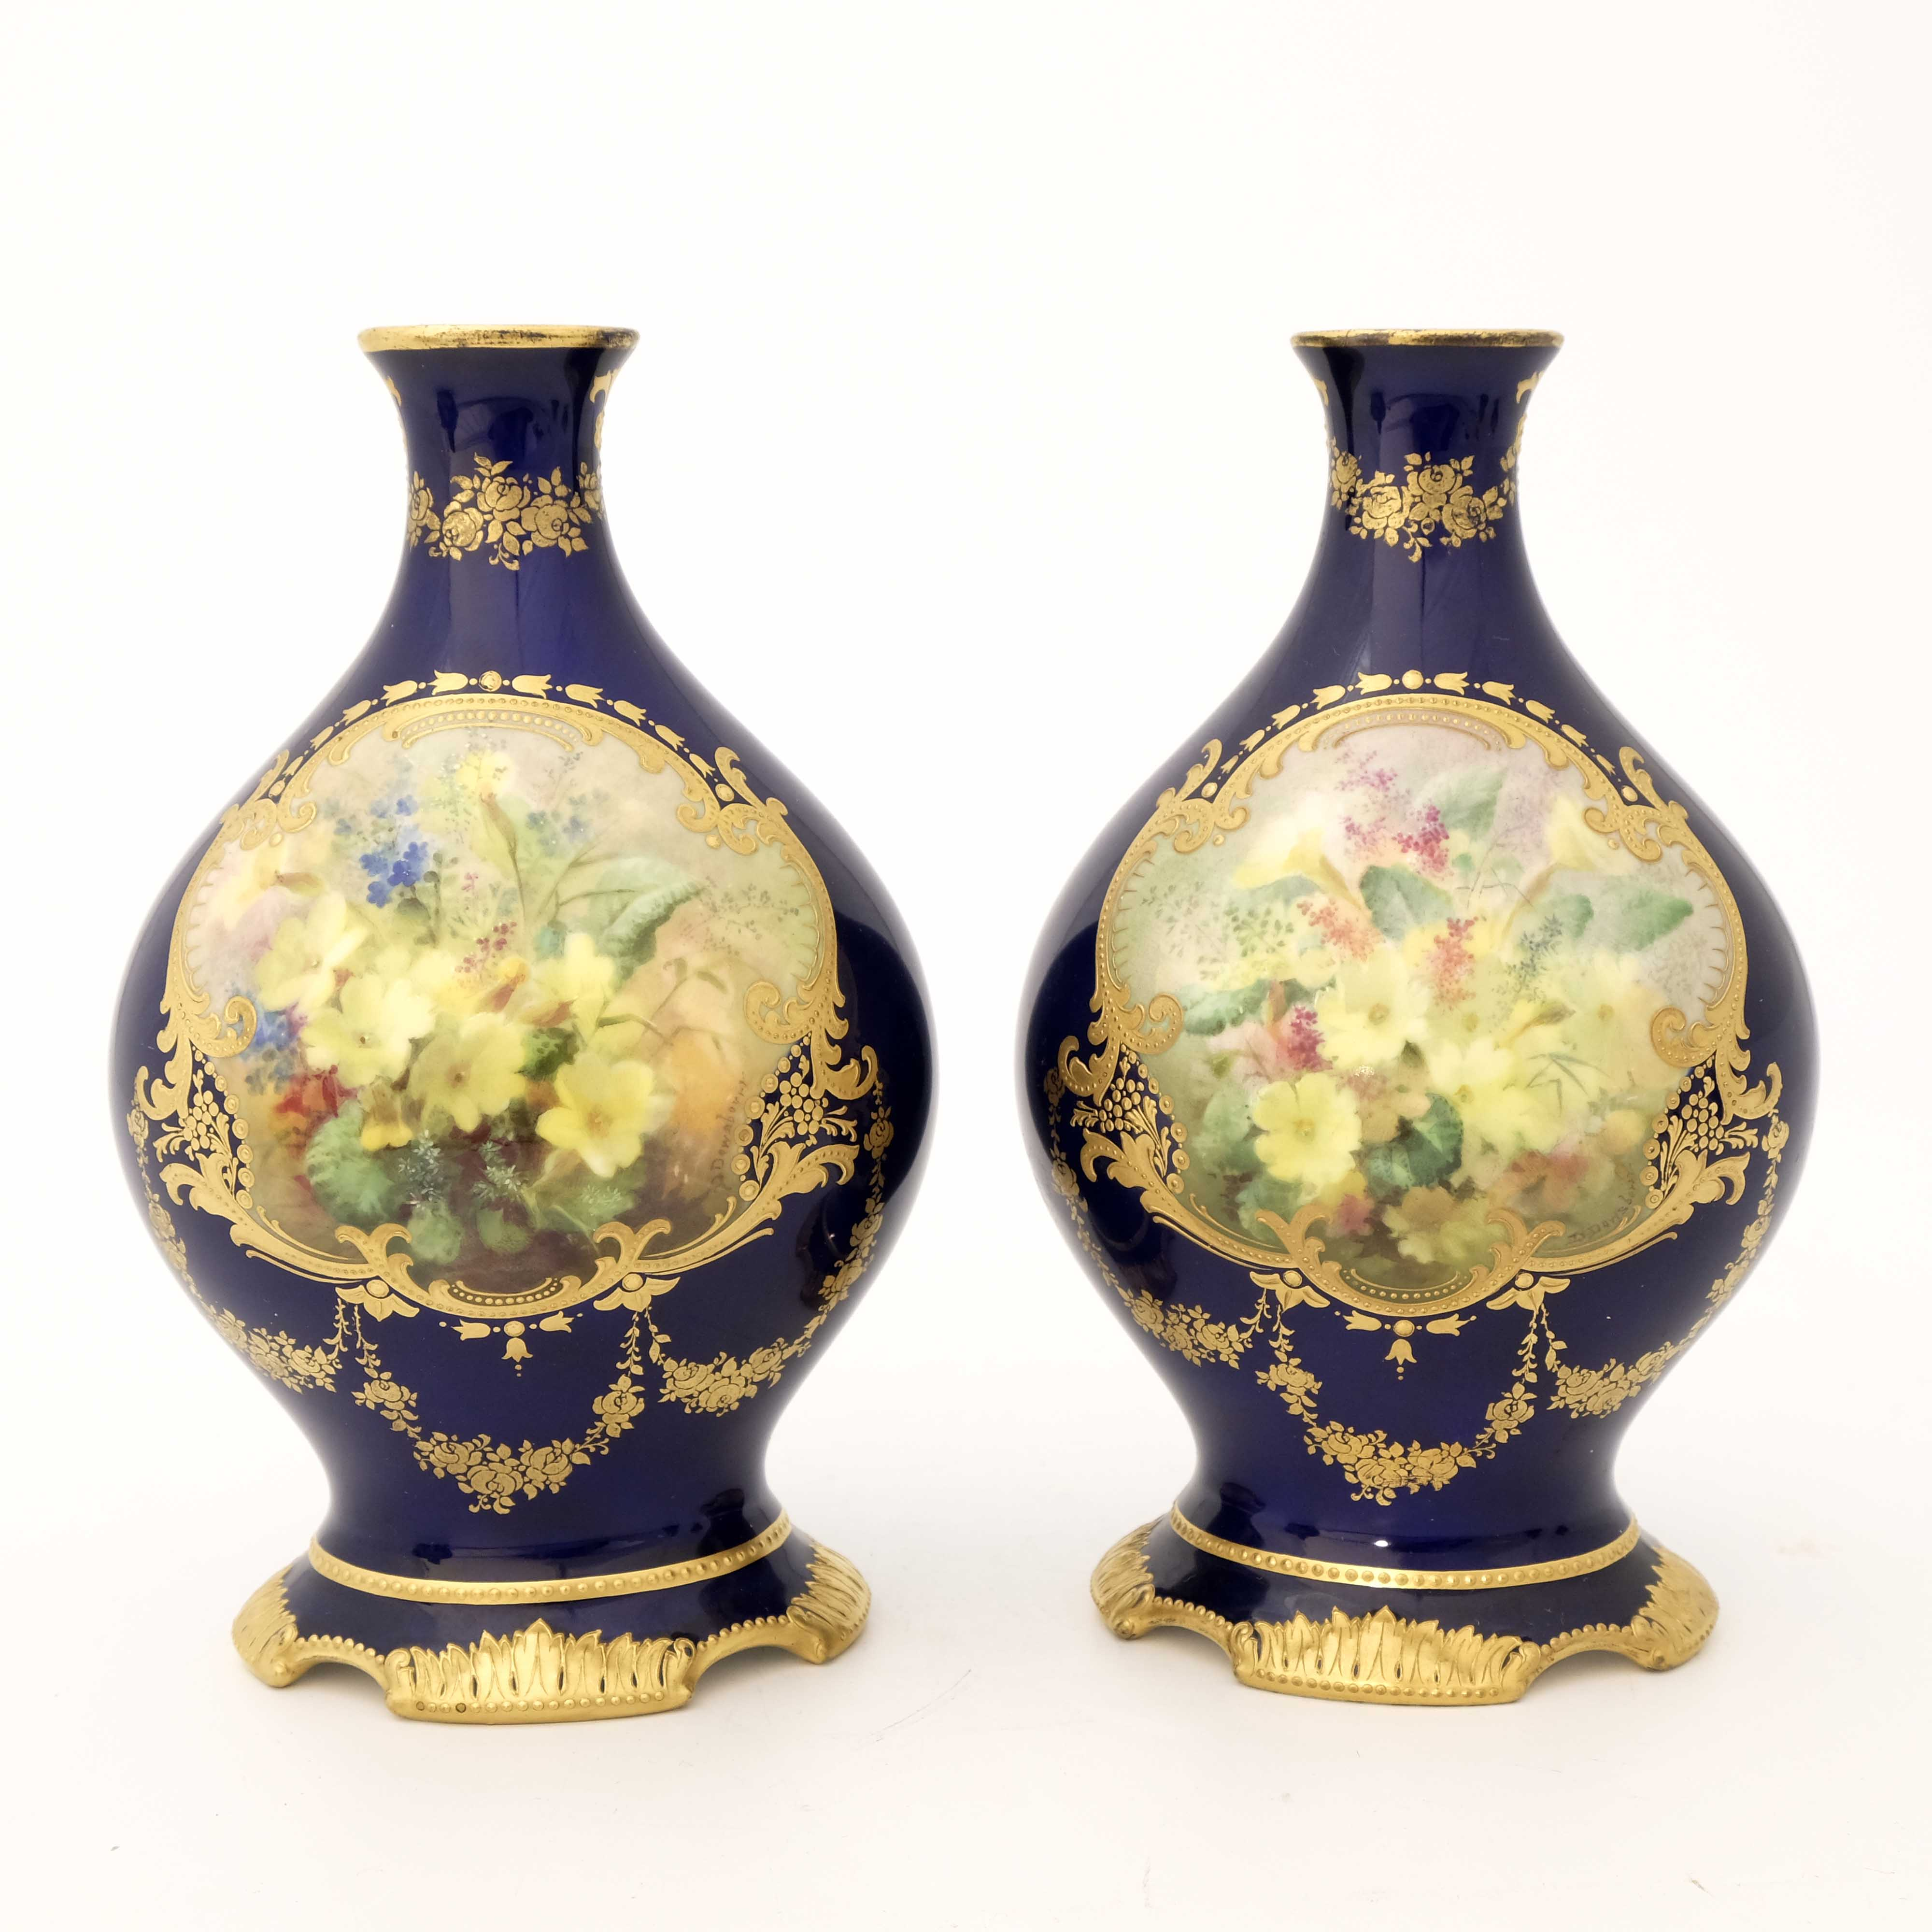 David Dewsberry for Royal Doulton, a pair of flora